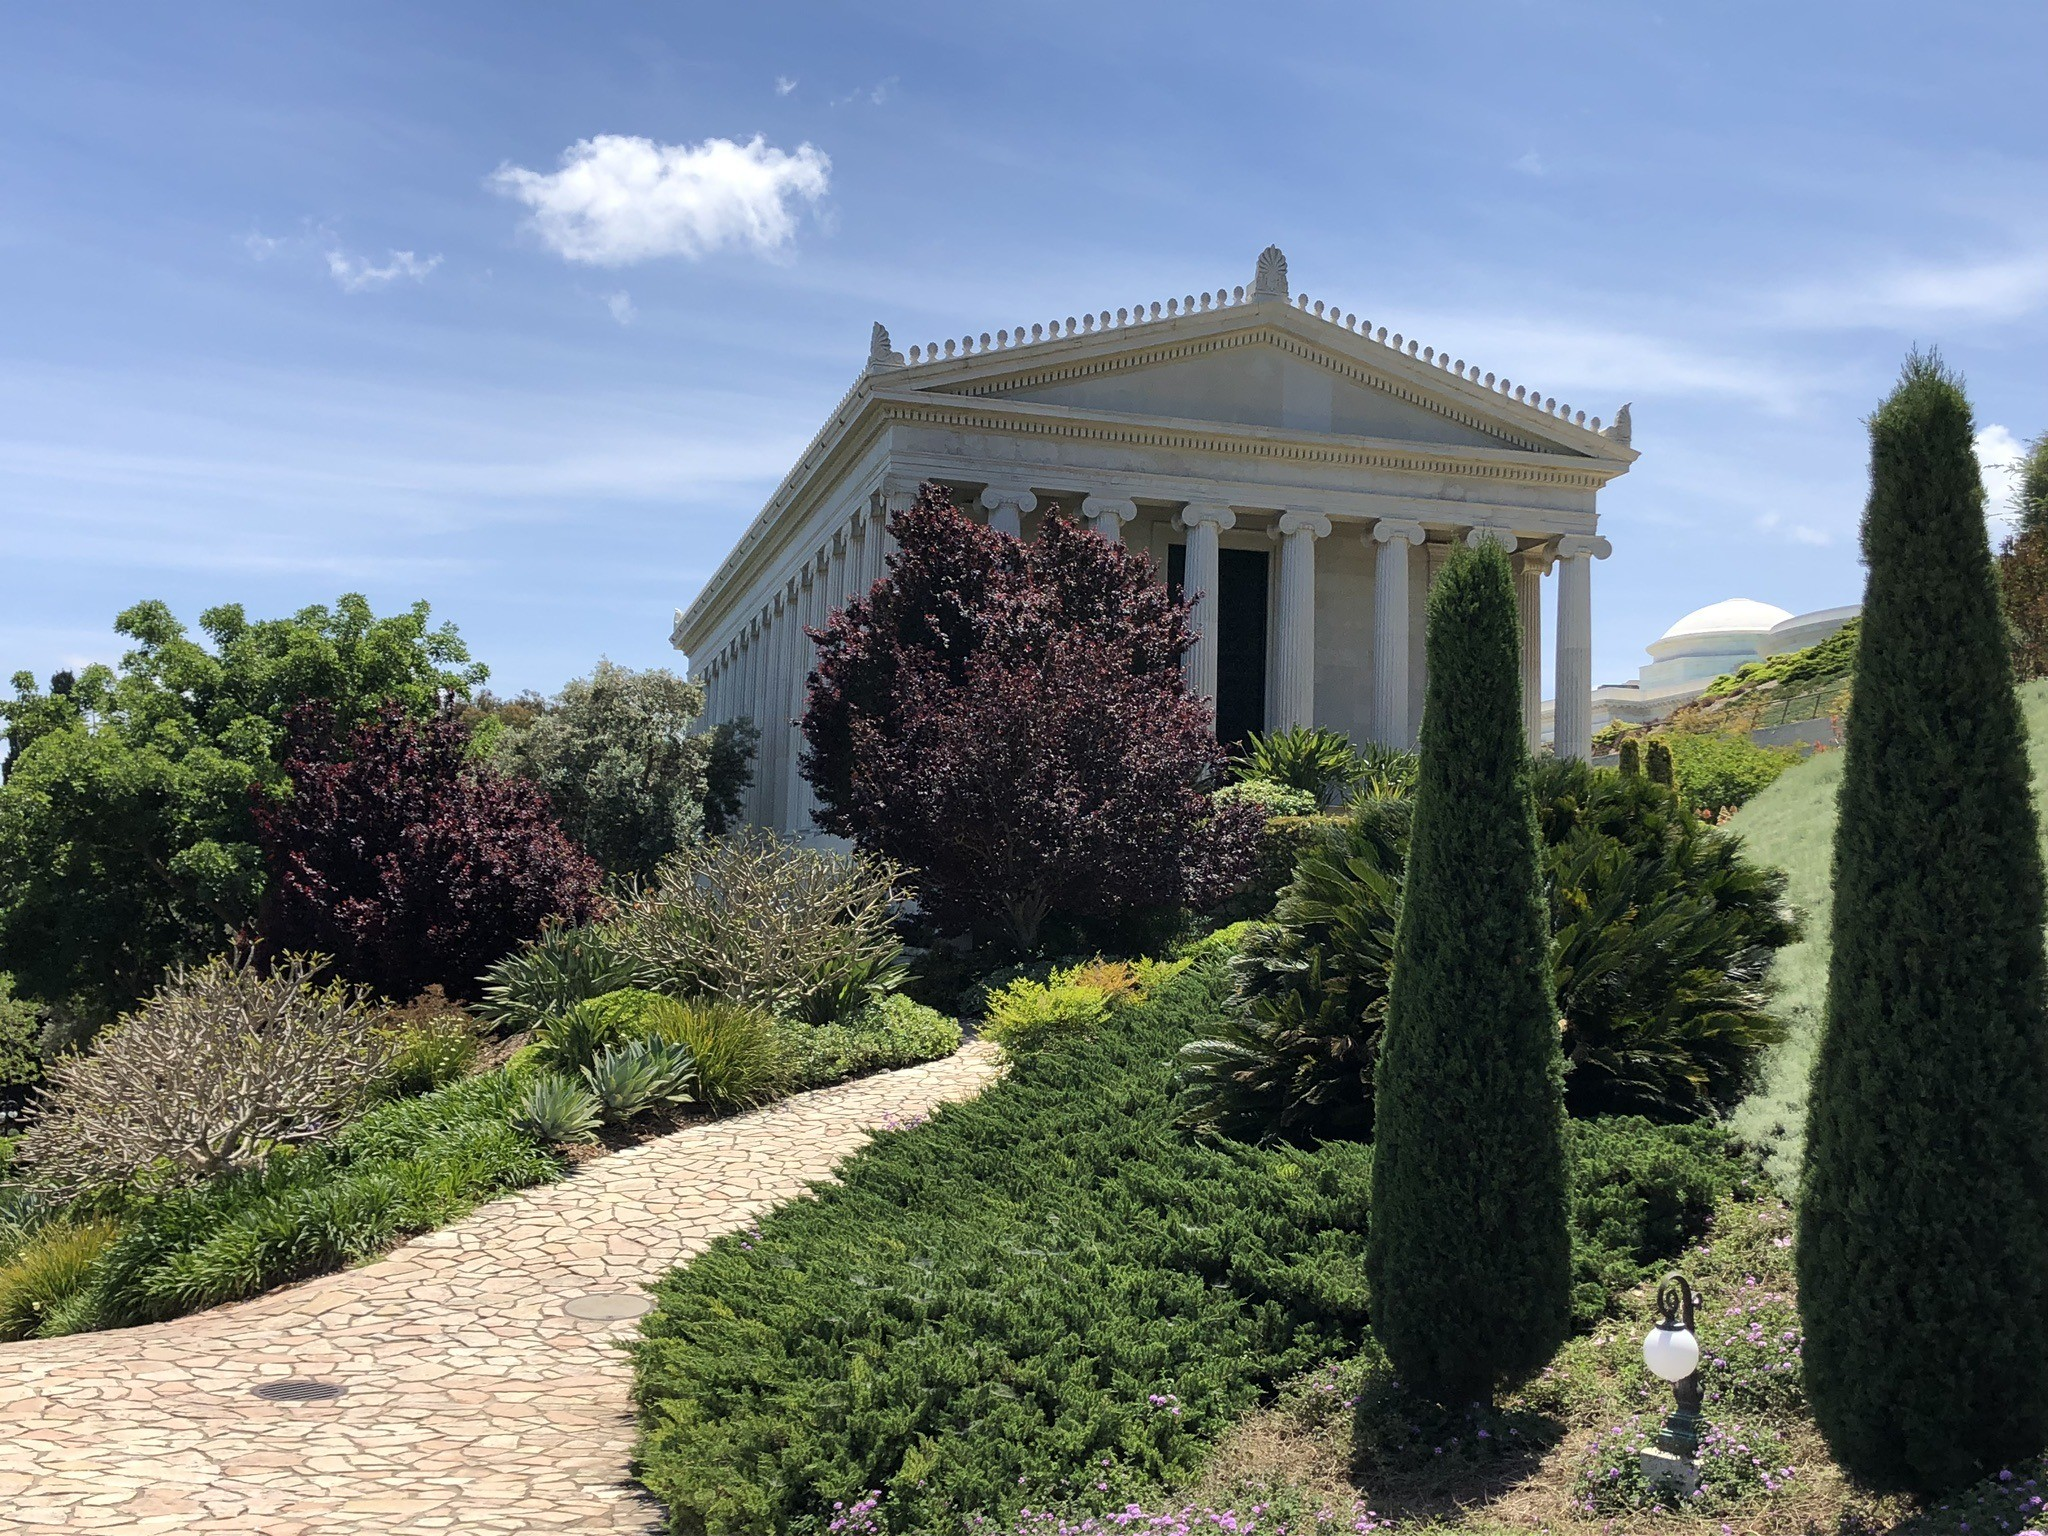 The Archive of the Baha'i Religion